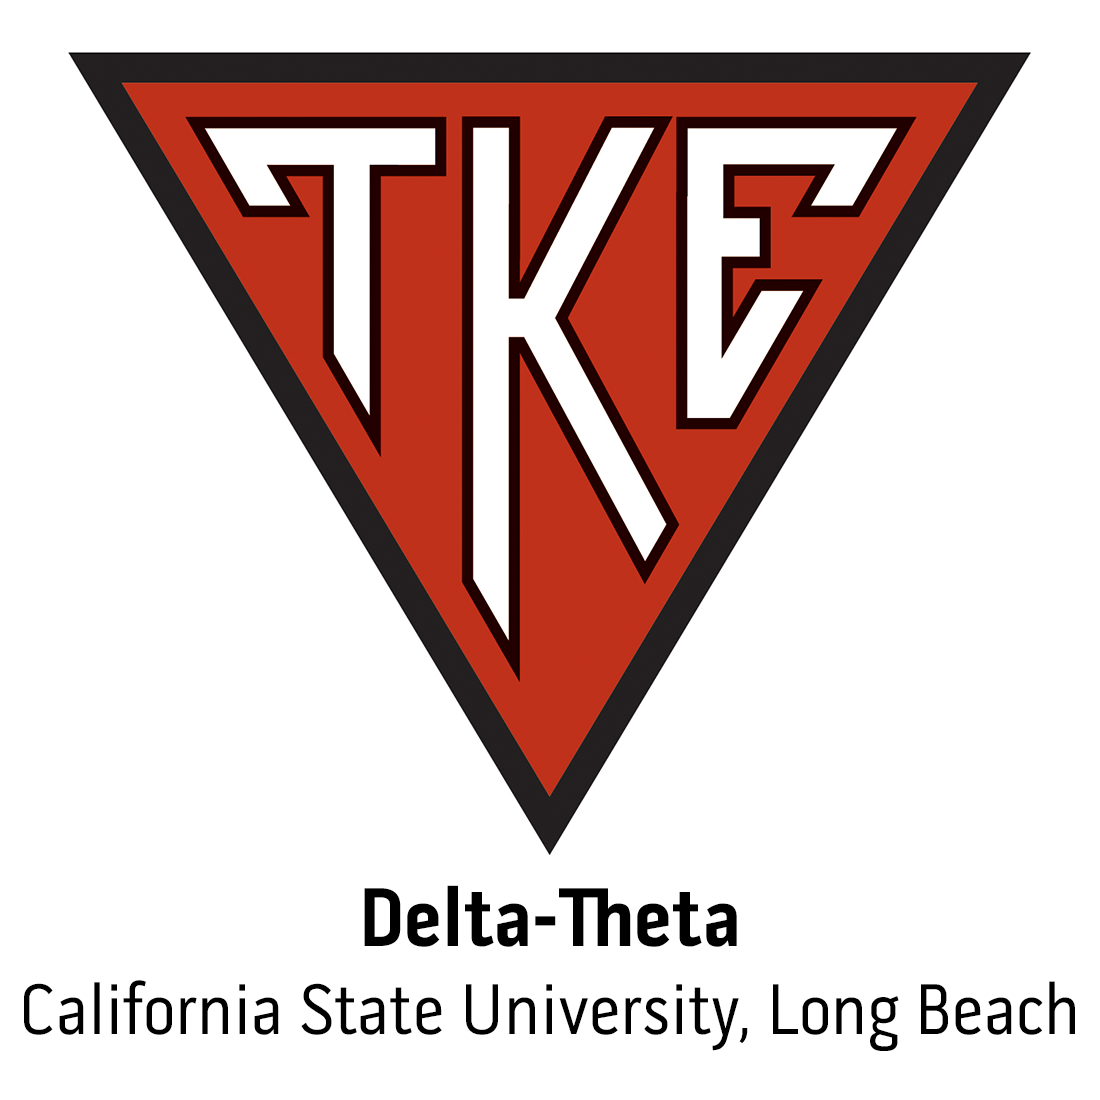 Delta-Theta Chapter at California State University, Long Beach